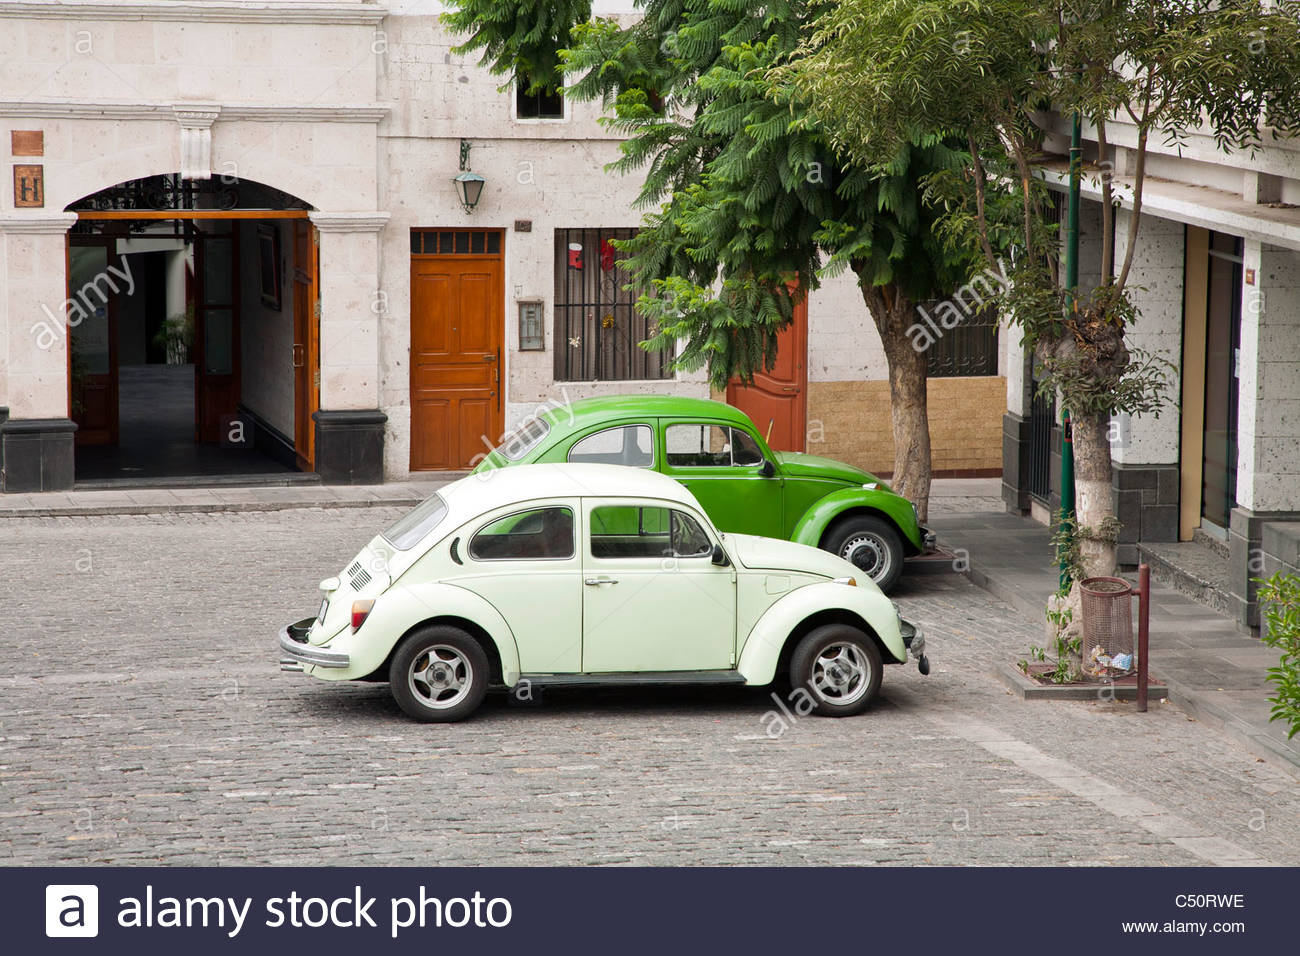 Two green Volkswagen Beetles parked side-by-side in Arequipa, Peru. Stock Photo